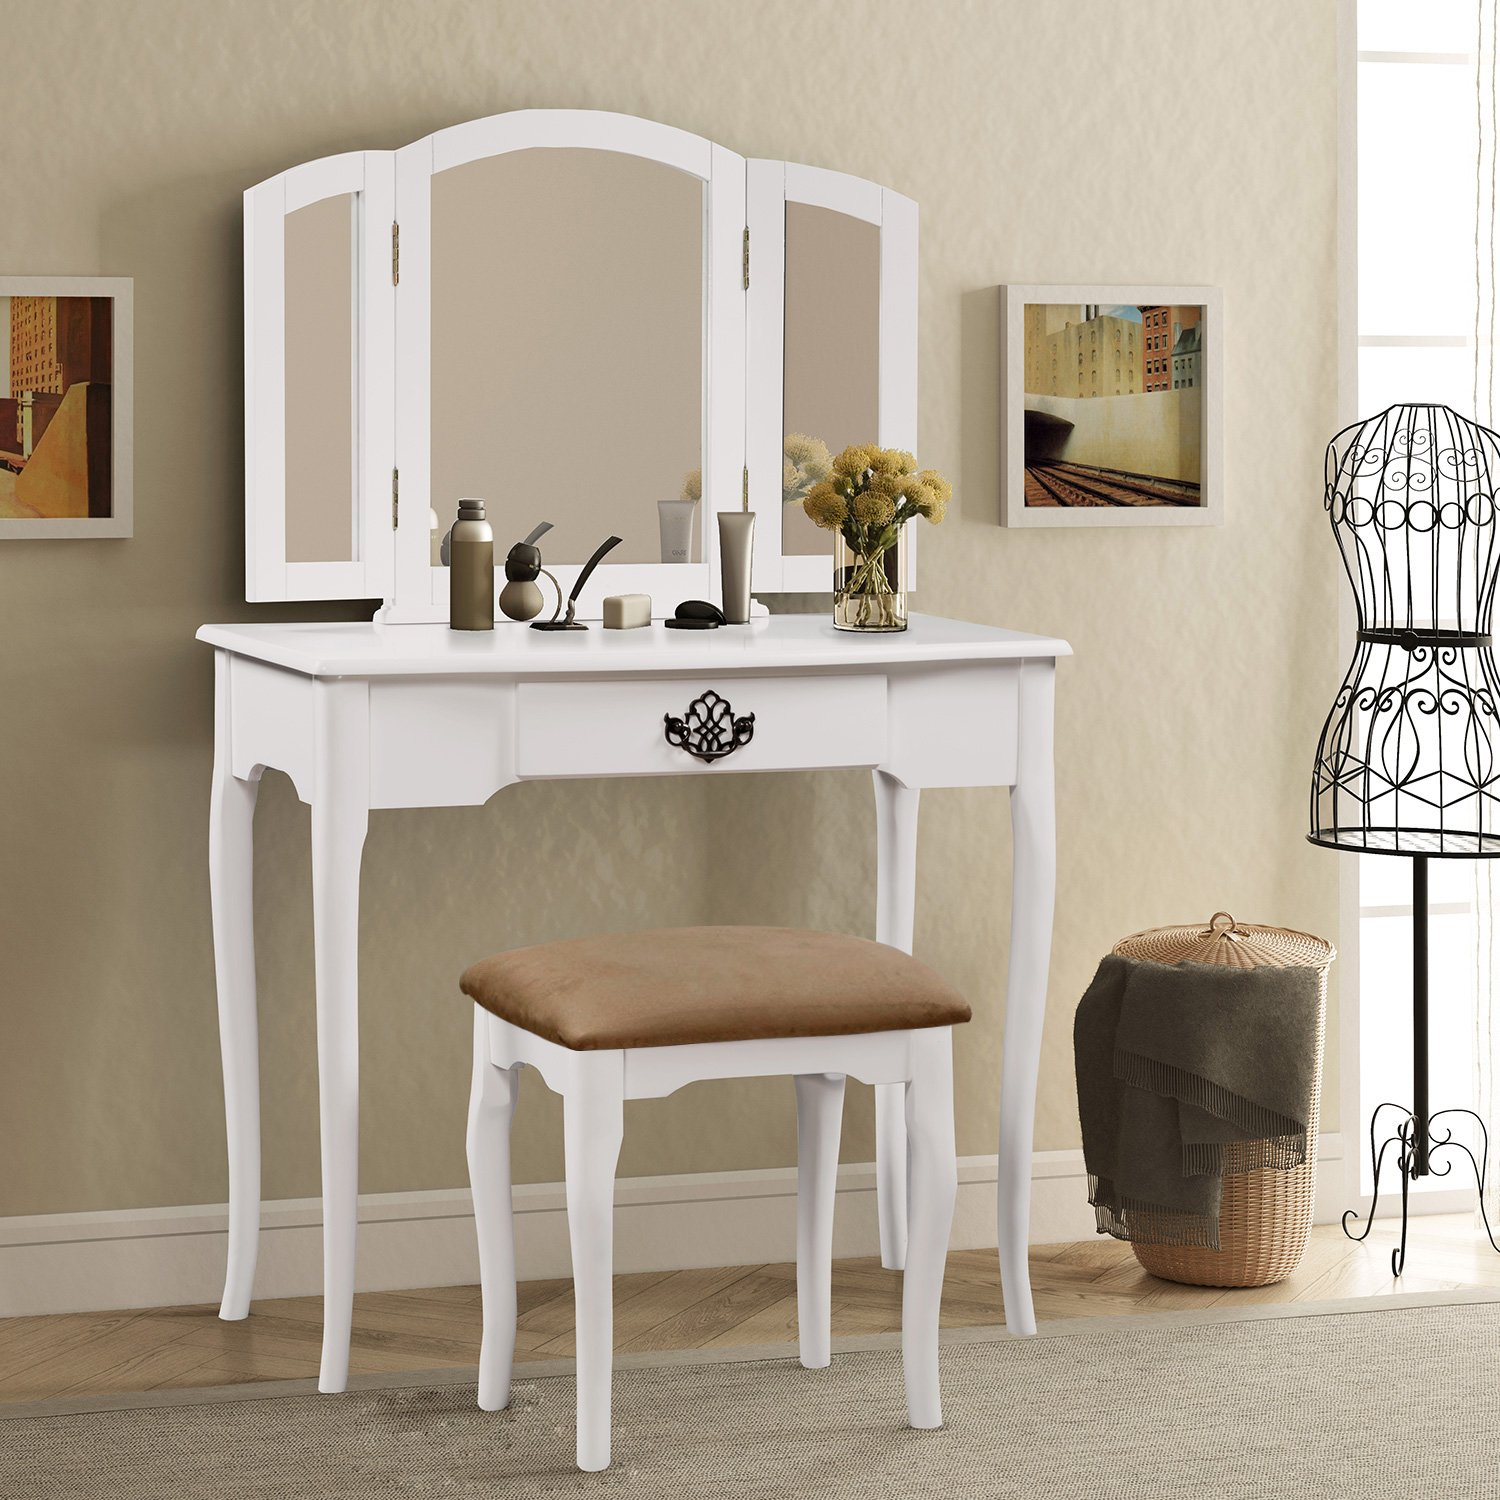 Harper & Bright Designs Vanity Set Make-up Dressing Table with Mirror and Cushioned Stool (Black) WF036936